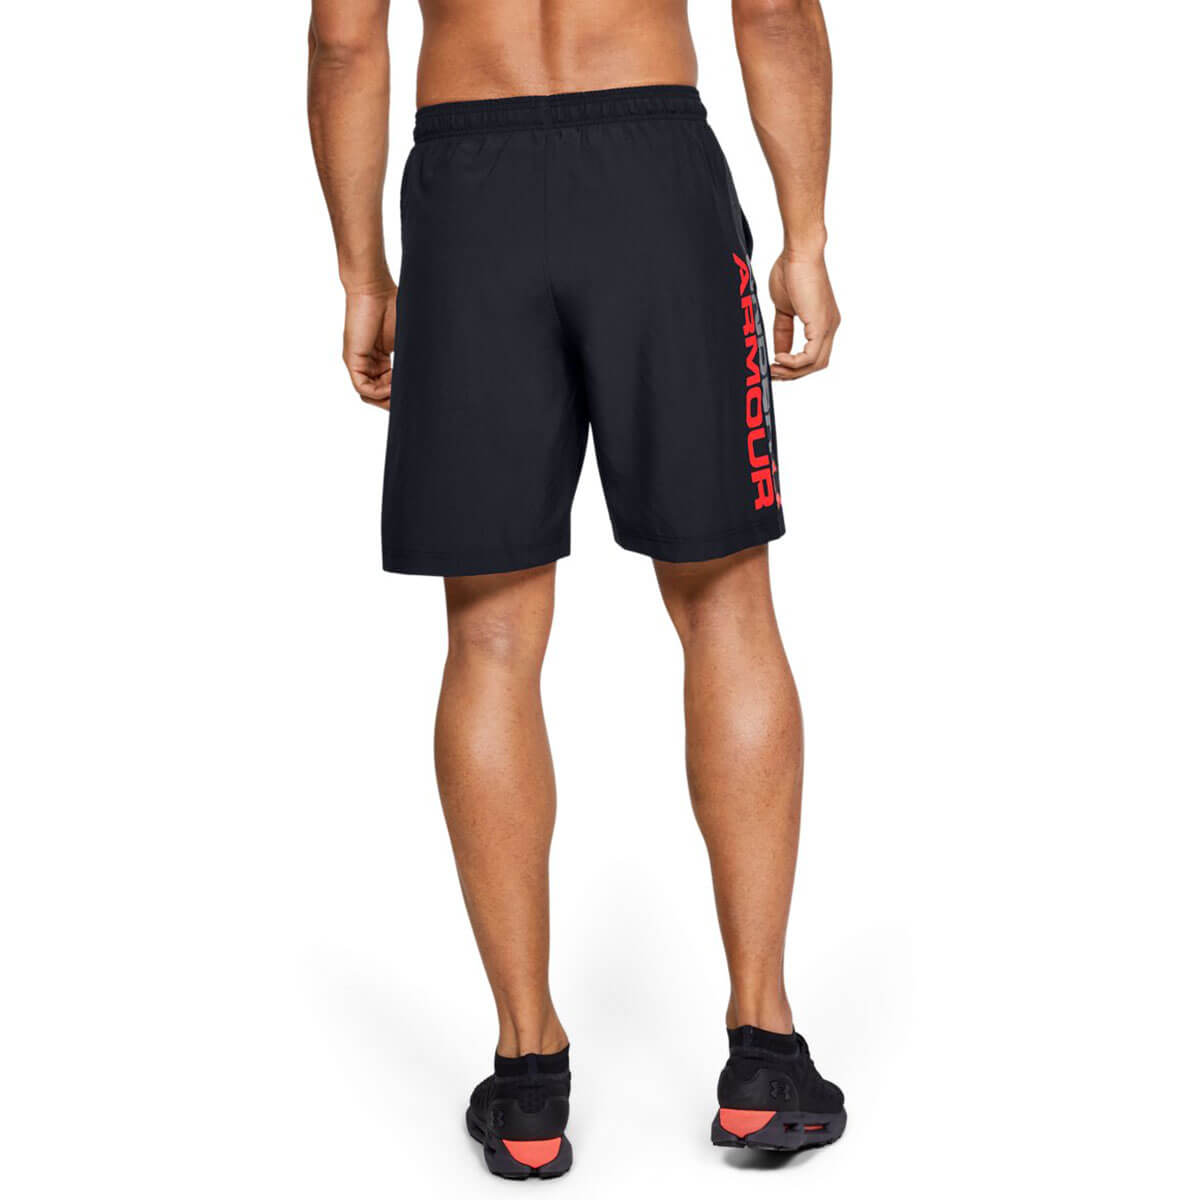 Under-Armour-Mens-2019-Woven-Graphic-Wordmark-Lightweight-Breathable-Shorts thumbnail 7